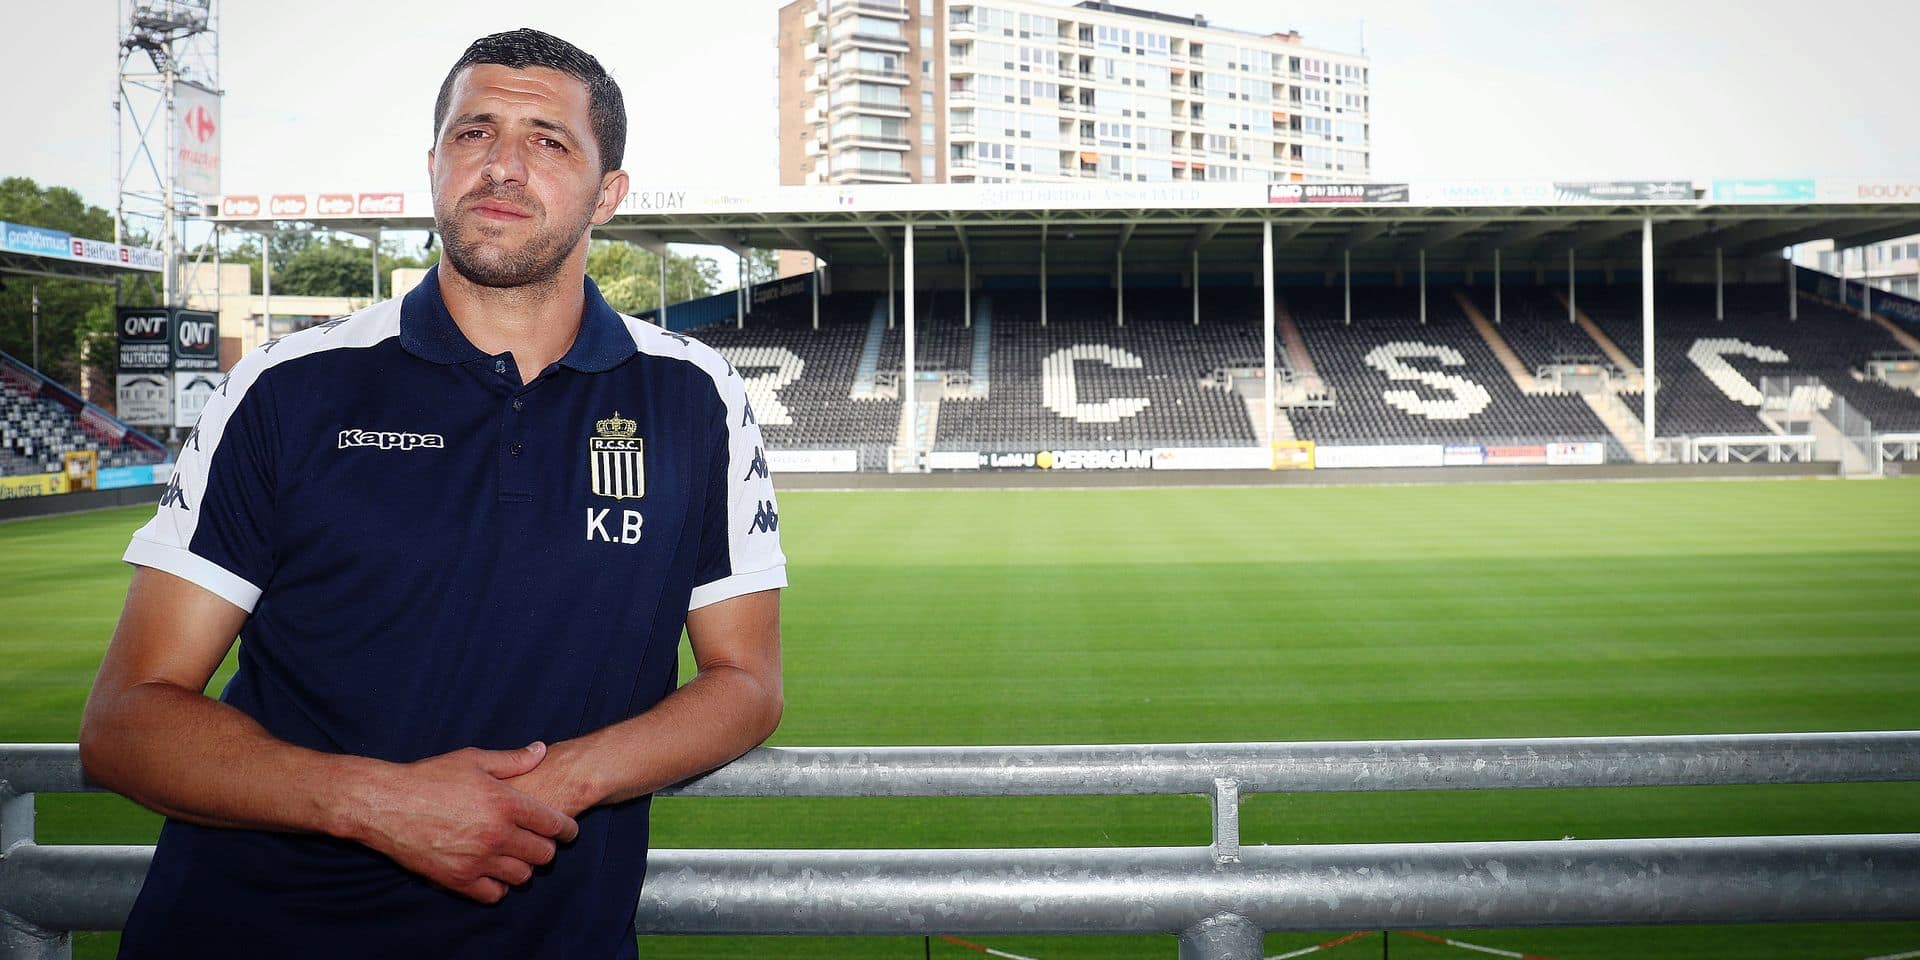 Charleroi's new head coach Karim Belhocine poses for the photographer after a press conference of Belgian soccer team Sporting Charleroi, Monday 24 June 2019 in Charleroi, in preparation of the upcoming 2019-2020 Jupiler Pro League season. BELGA PHOTO VIRGINIE LEFOUR